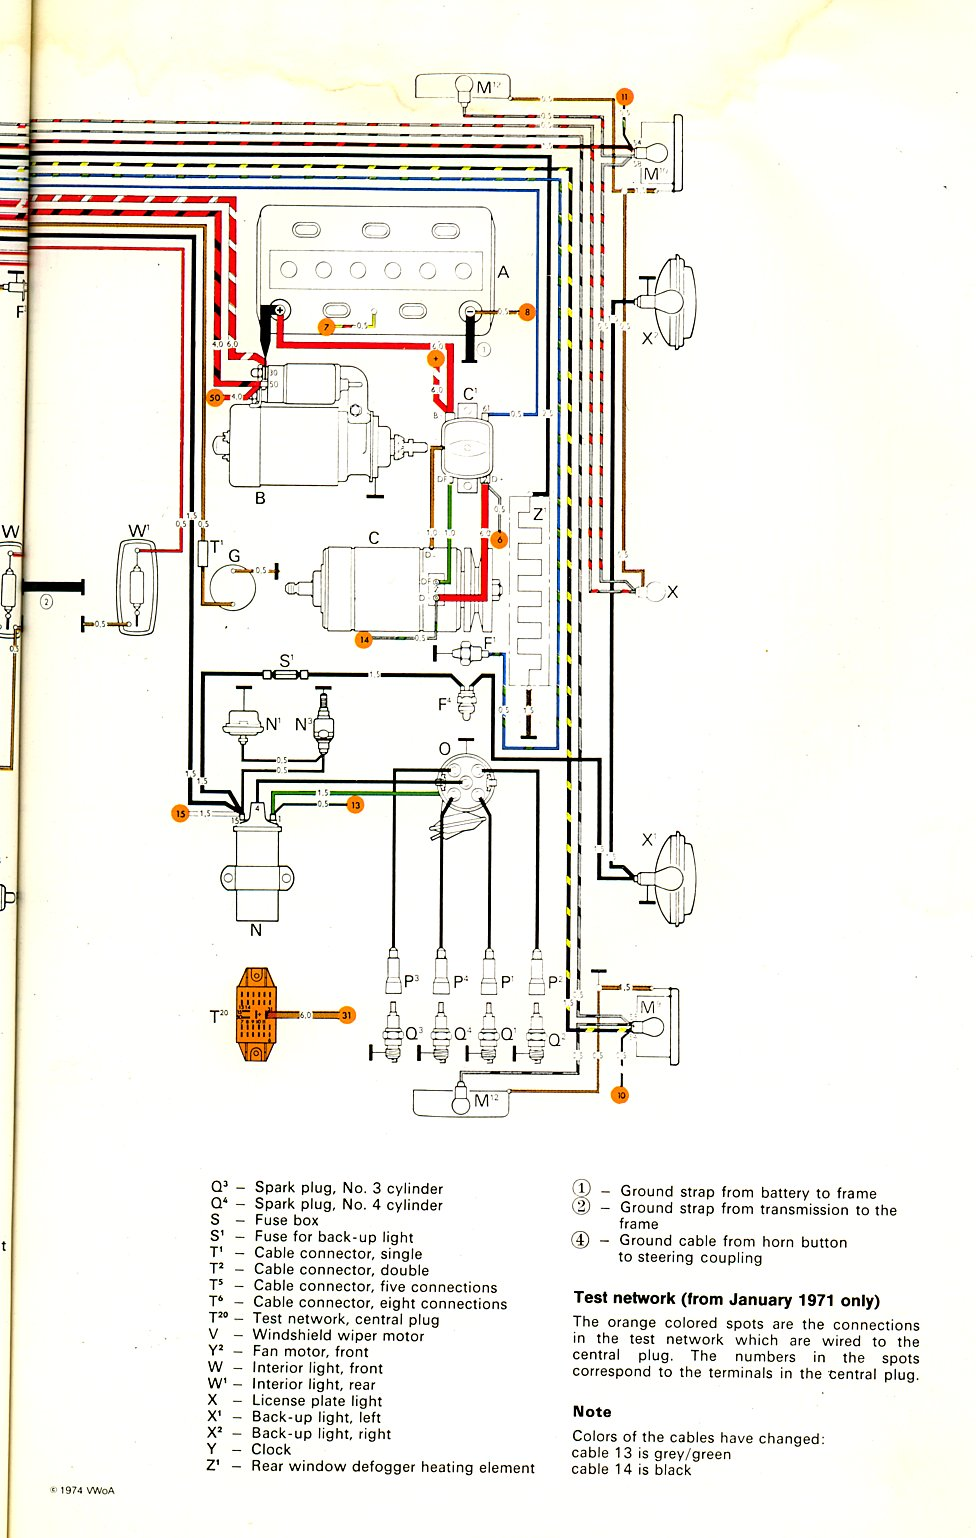 1967 Corvette Power Window Wiring Diagram Library For Switches